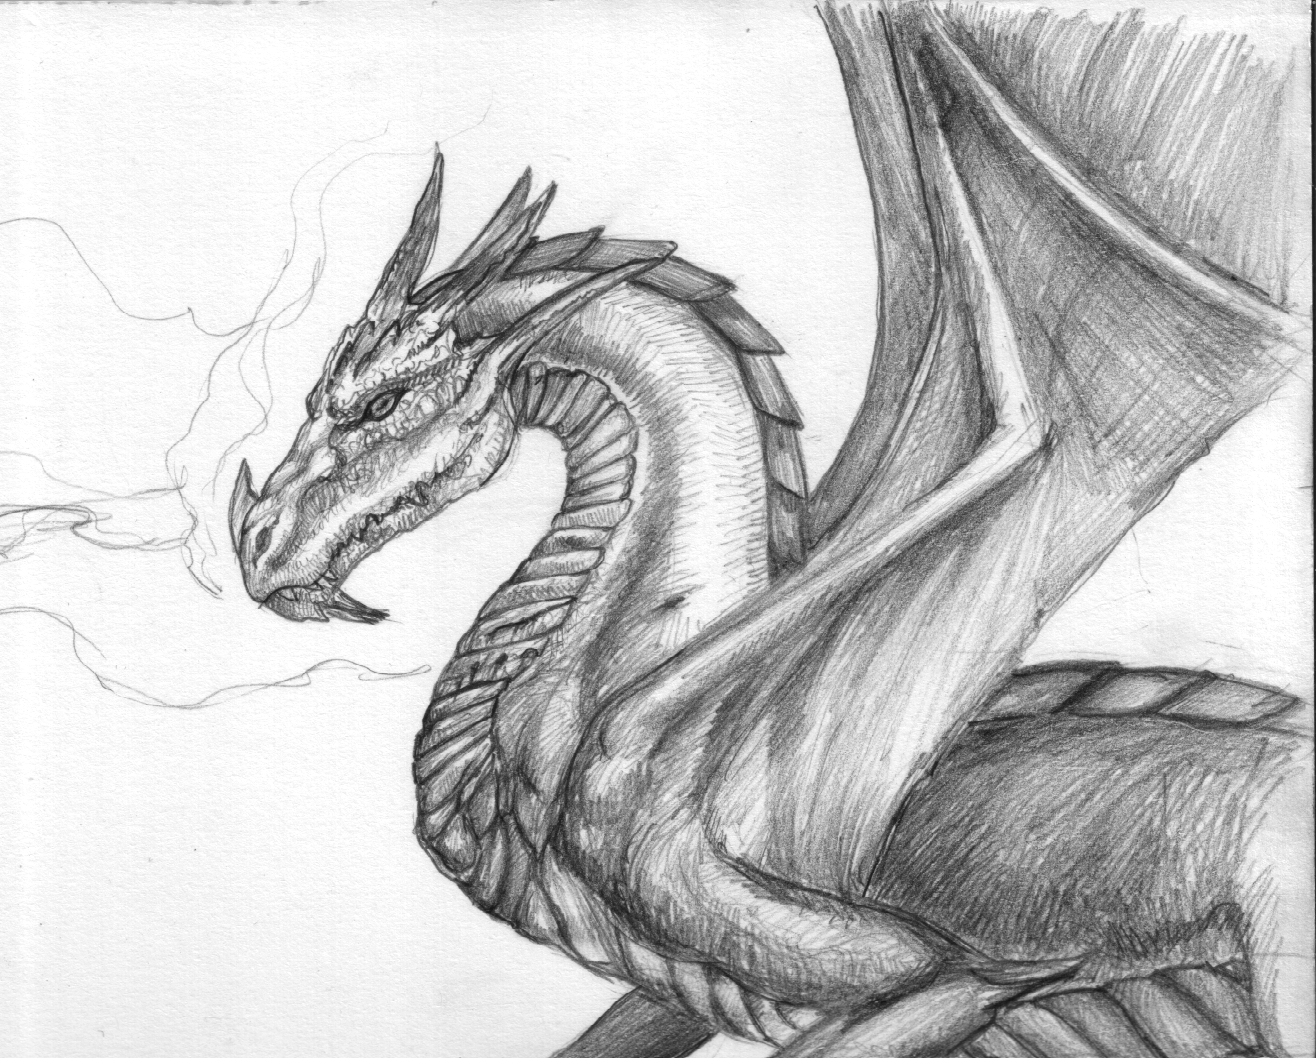 Dragon2 dessins et croquis - Dessins dragon ...